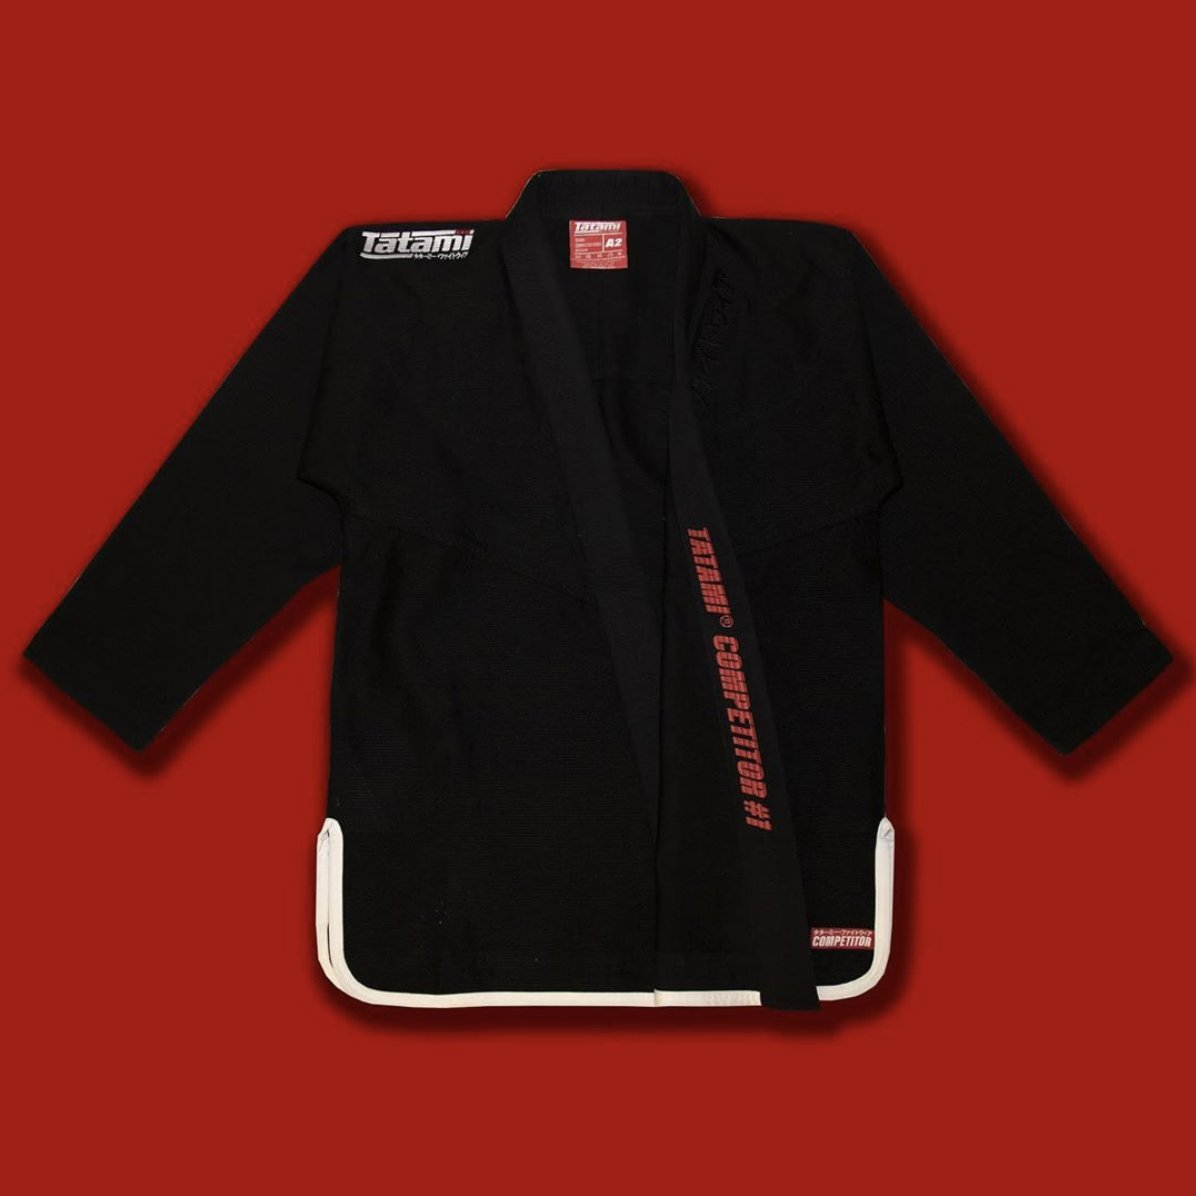 Competitor Gi Out Now Black // Red Edition  Shop here: https://t.co/ZrjdiBTqfa https://t.co/er3F0zWWNE